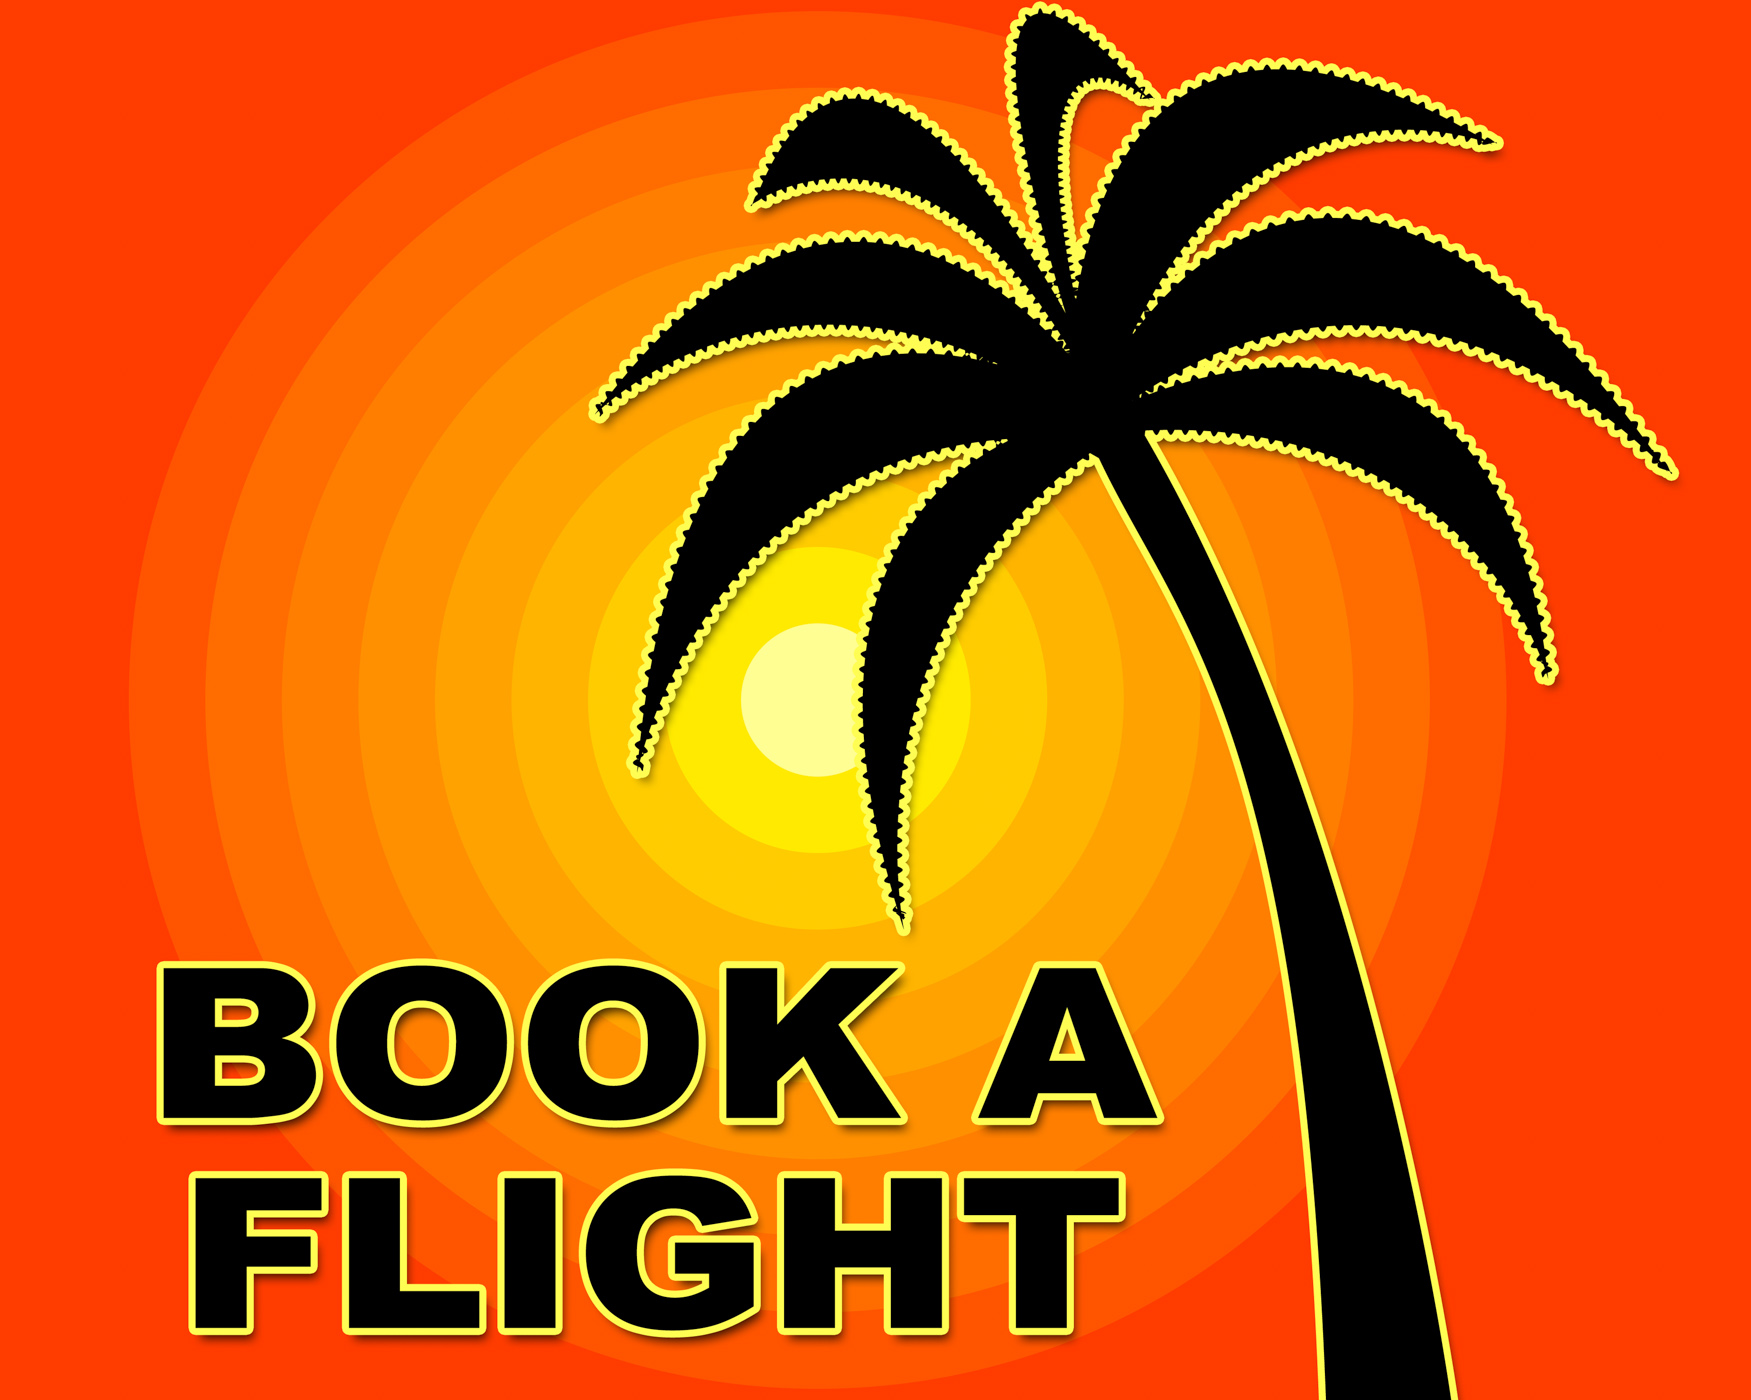 Book Flight Indicates Flights Aeroplane And Ordered, Plane, Ordered, Order, Reservation, HQ Photo